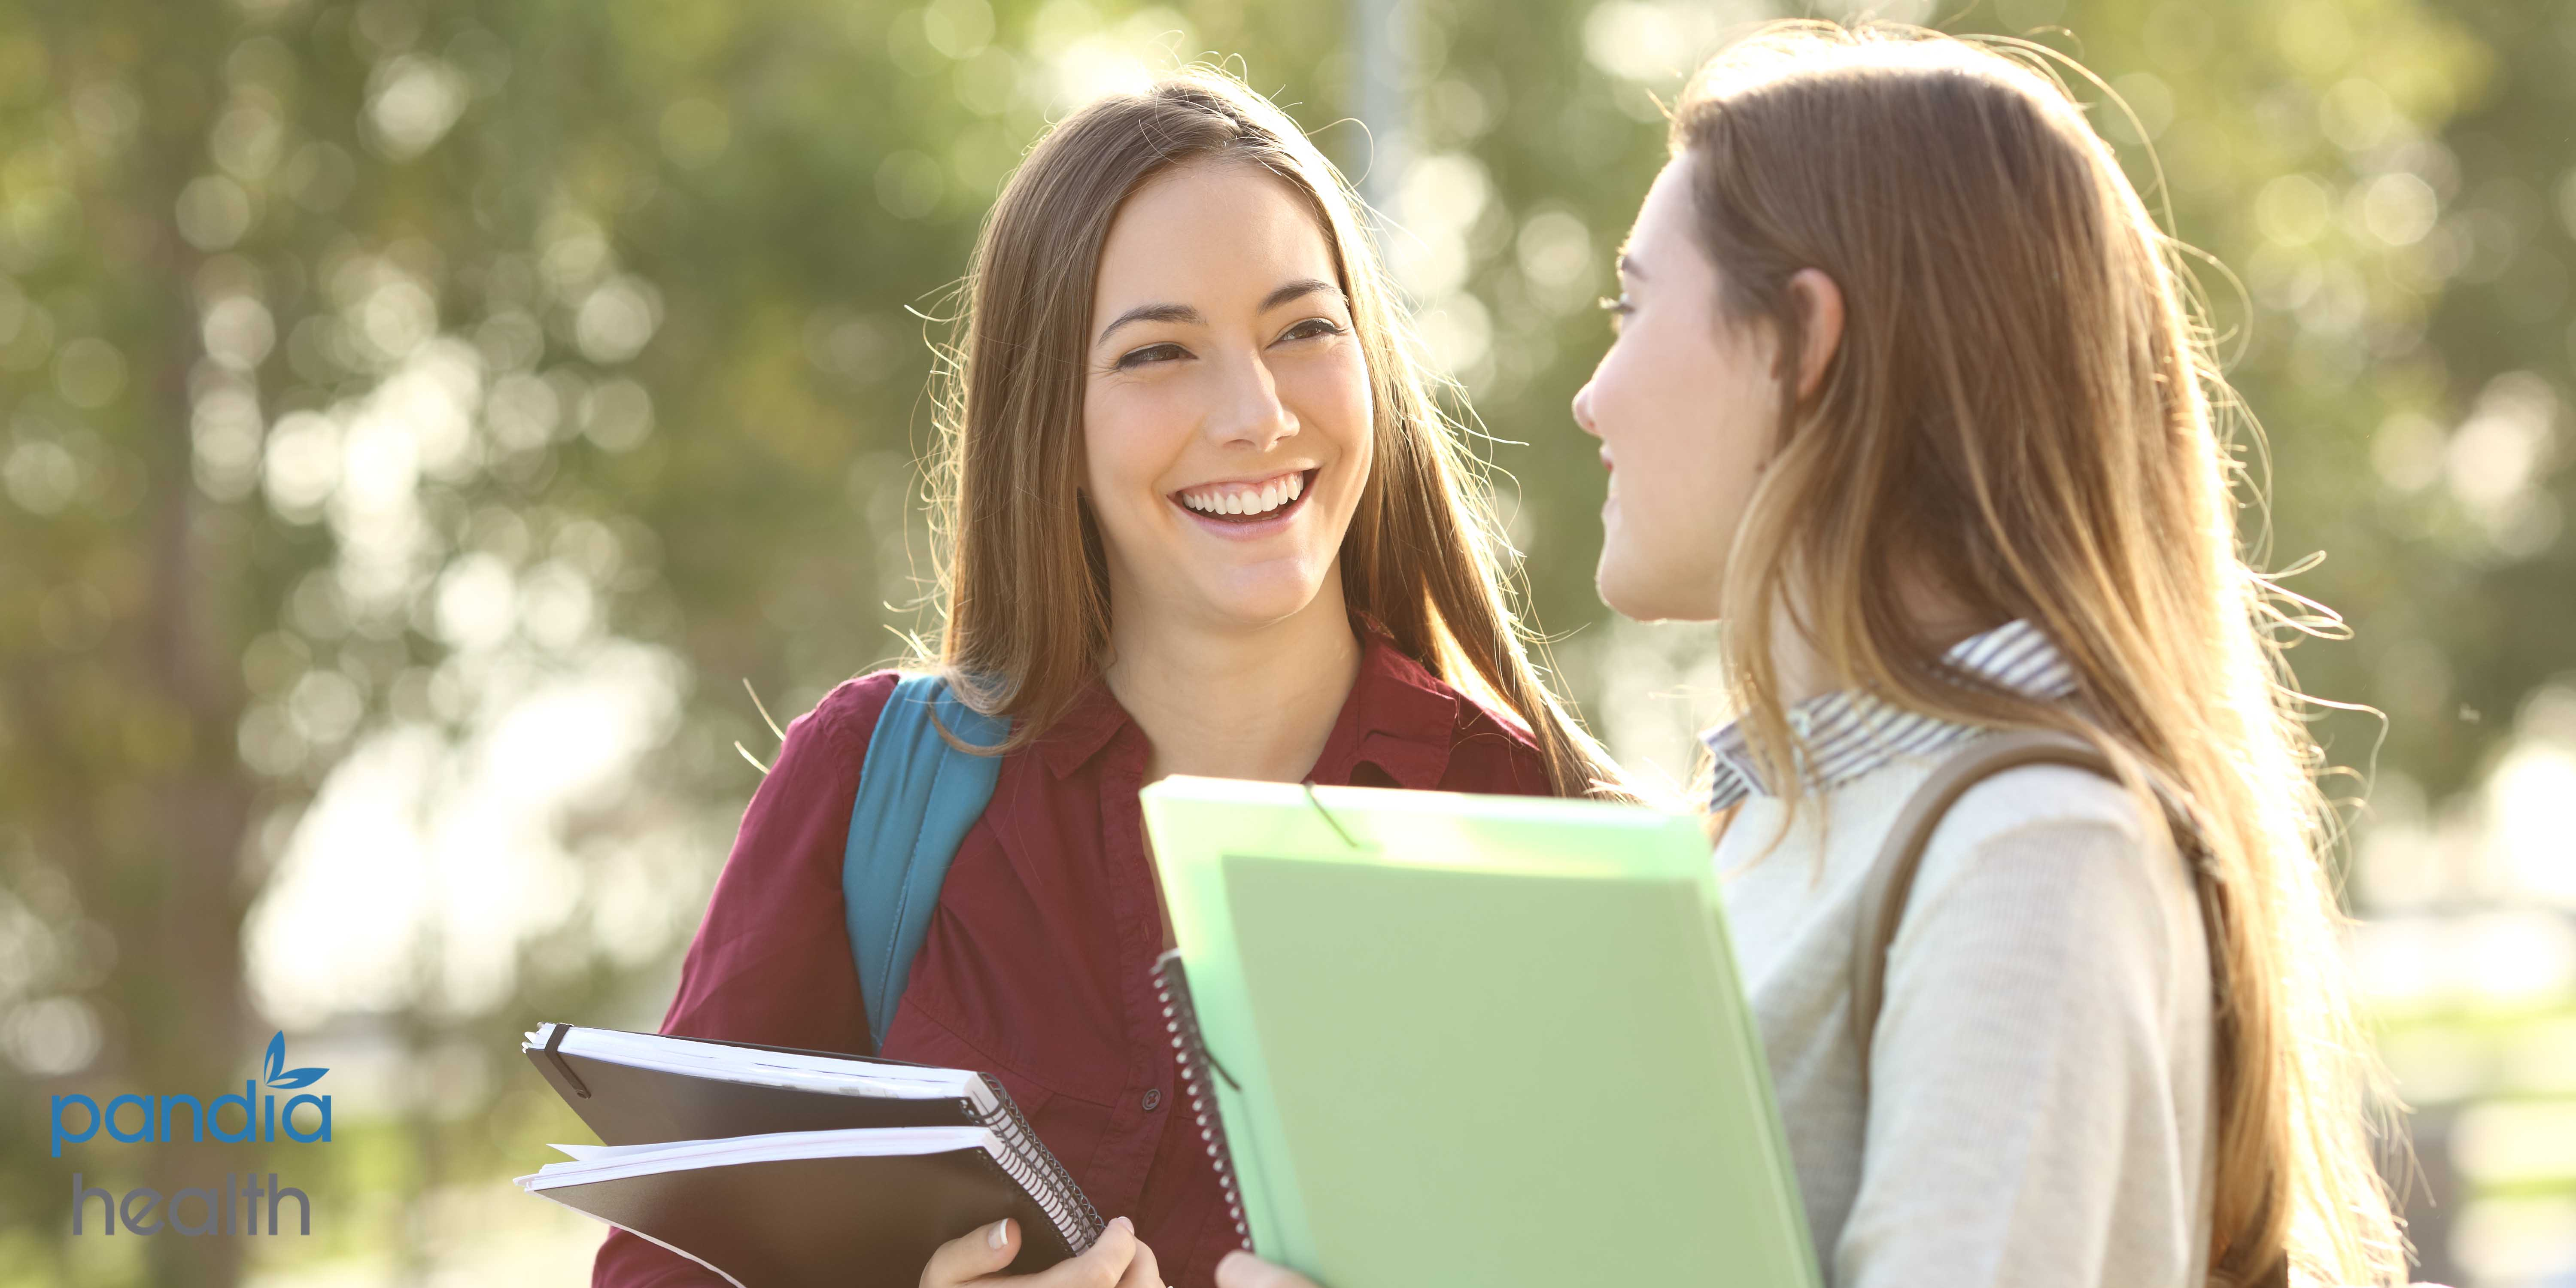 Two schoolgirls holding notebooks and laughing